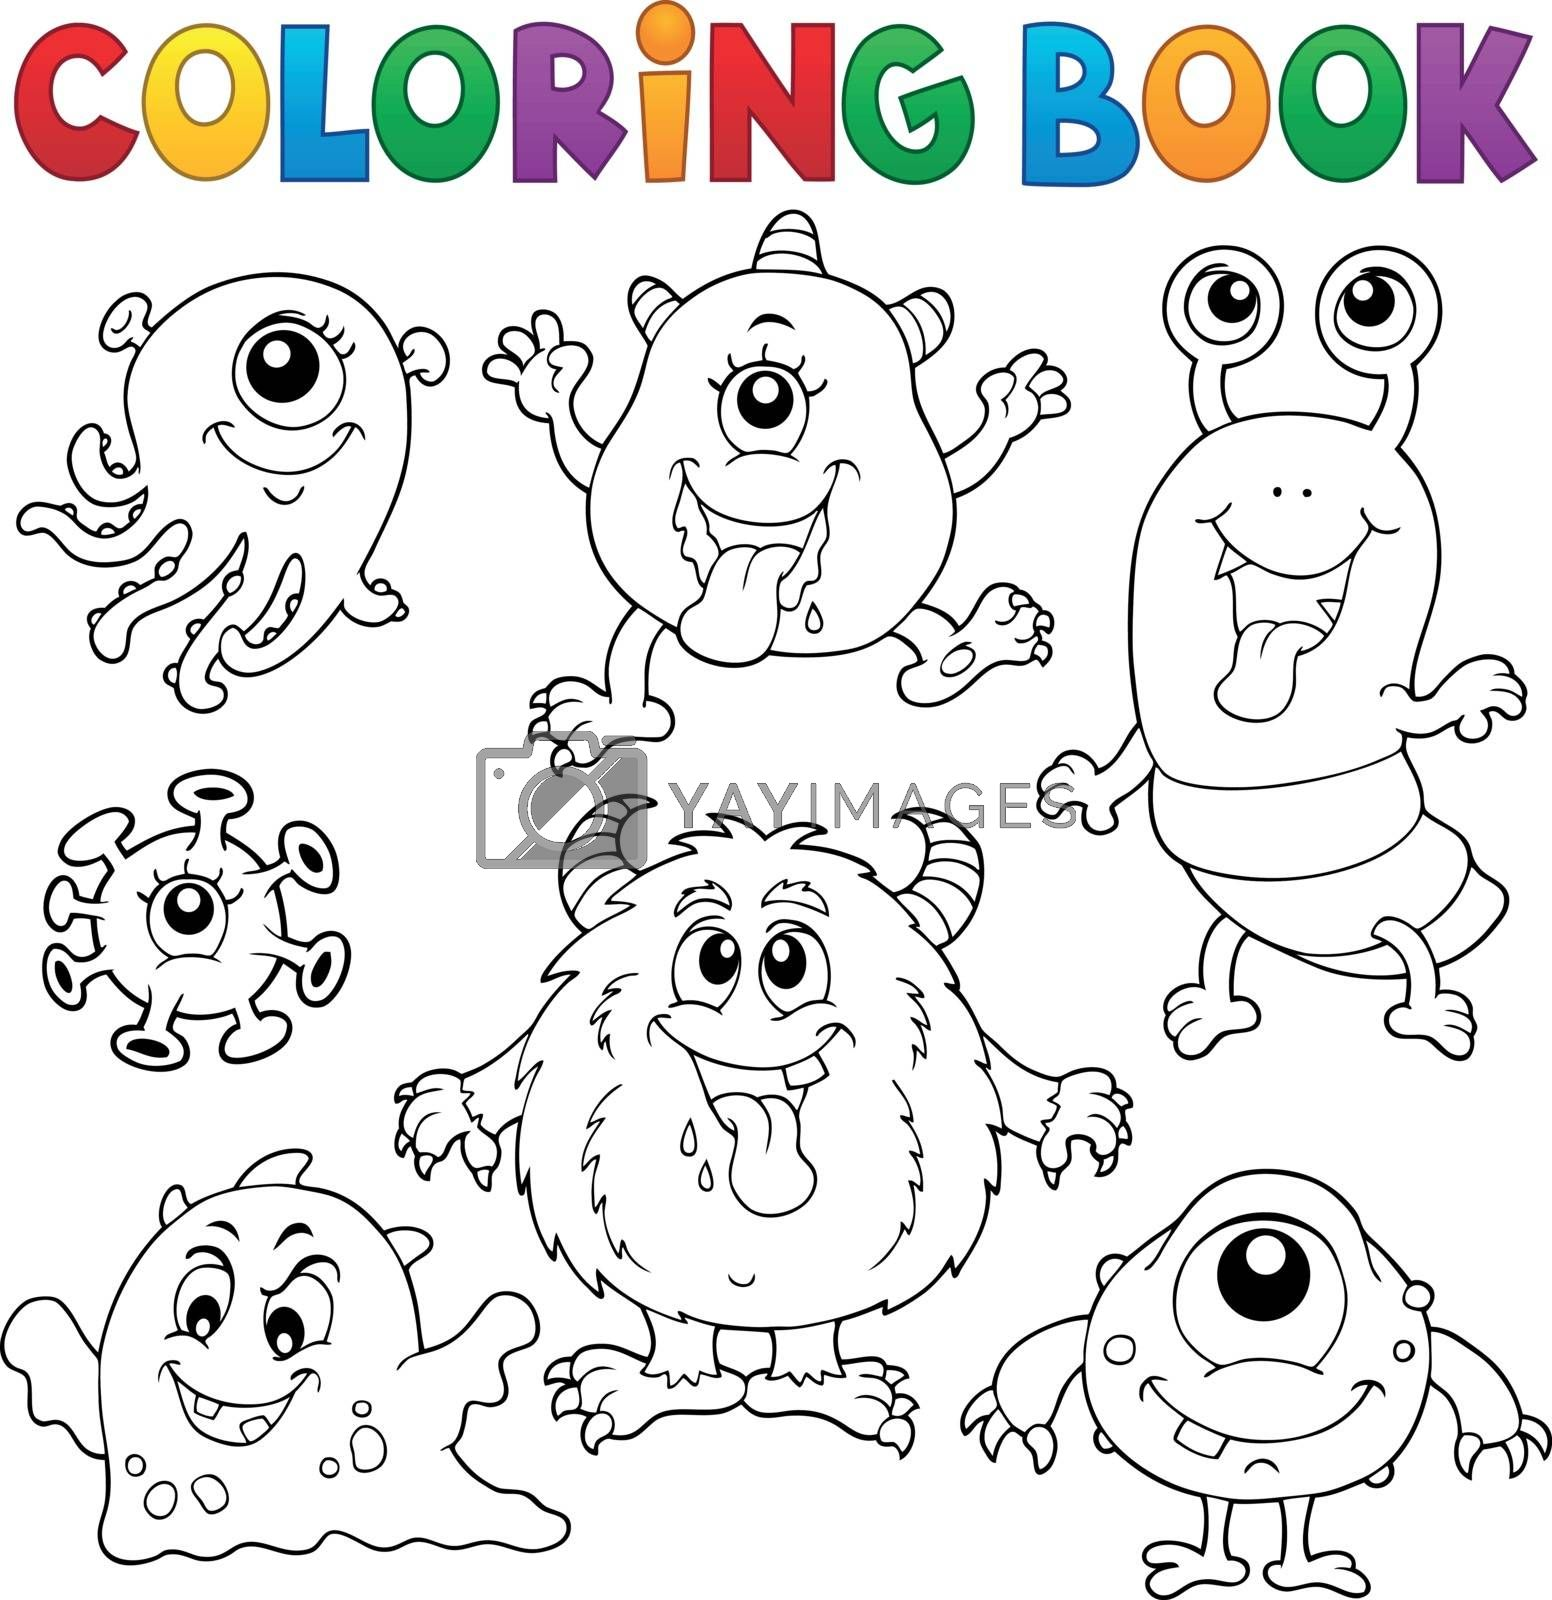 Coloring book monsters theme set 1 - eps10 vector illustration.